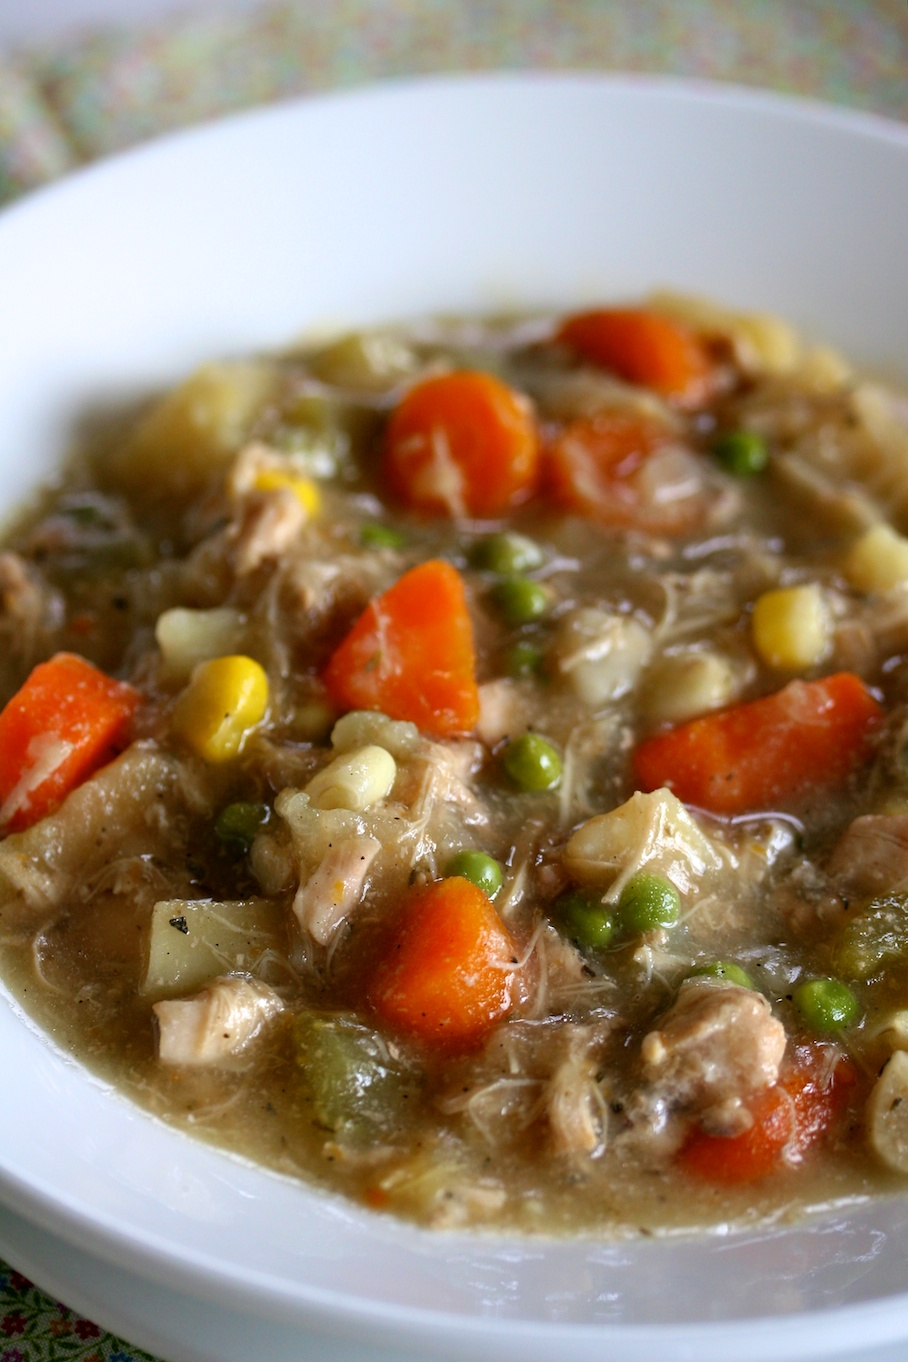 Slow cooker chicken stew movita beaucoup for Slow cooker fish stew